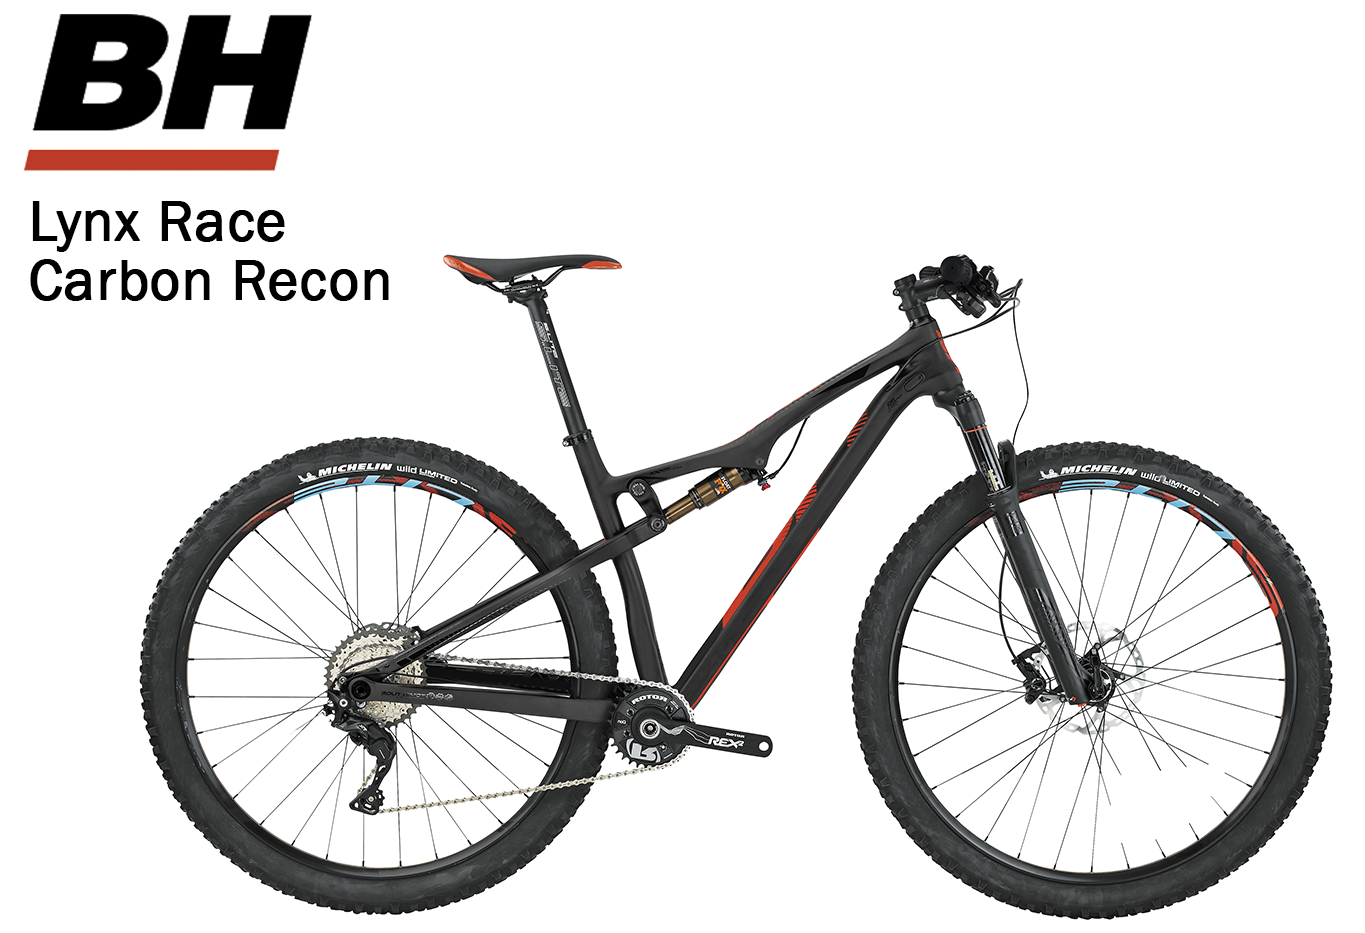 Lynx Race Carbon Recon